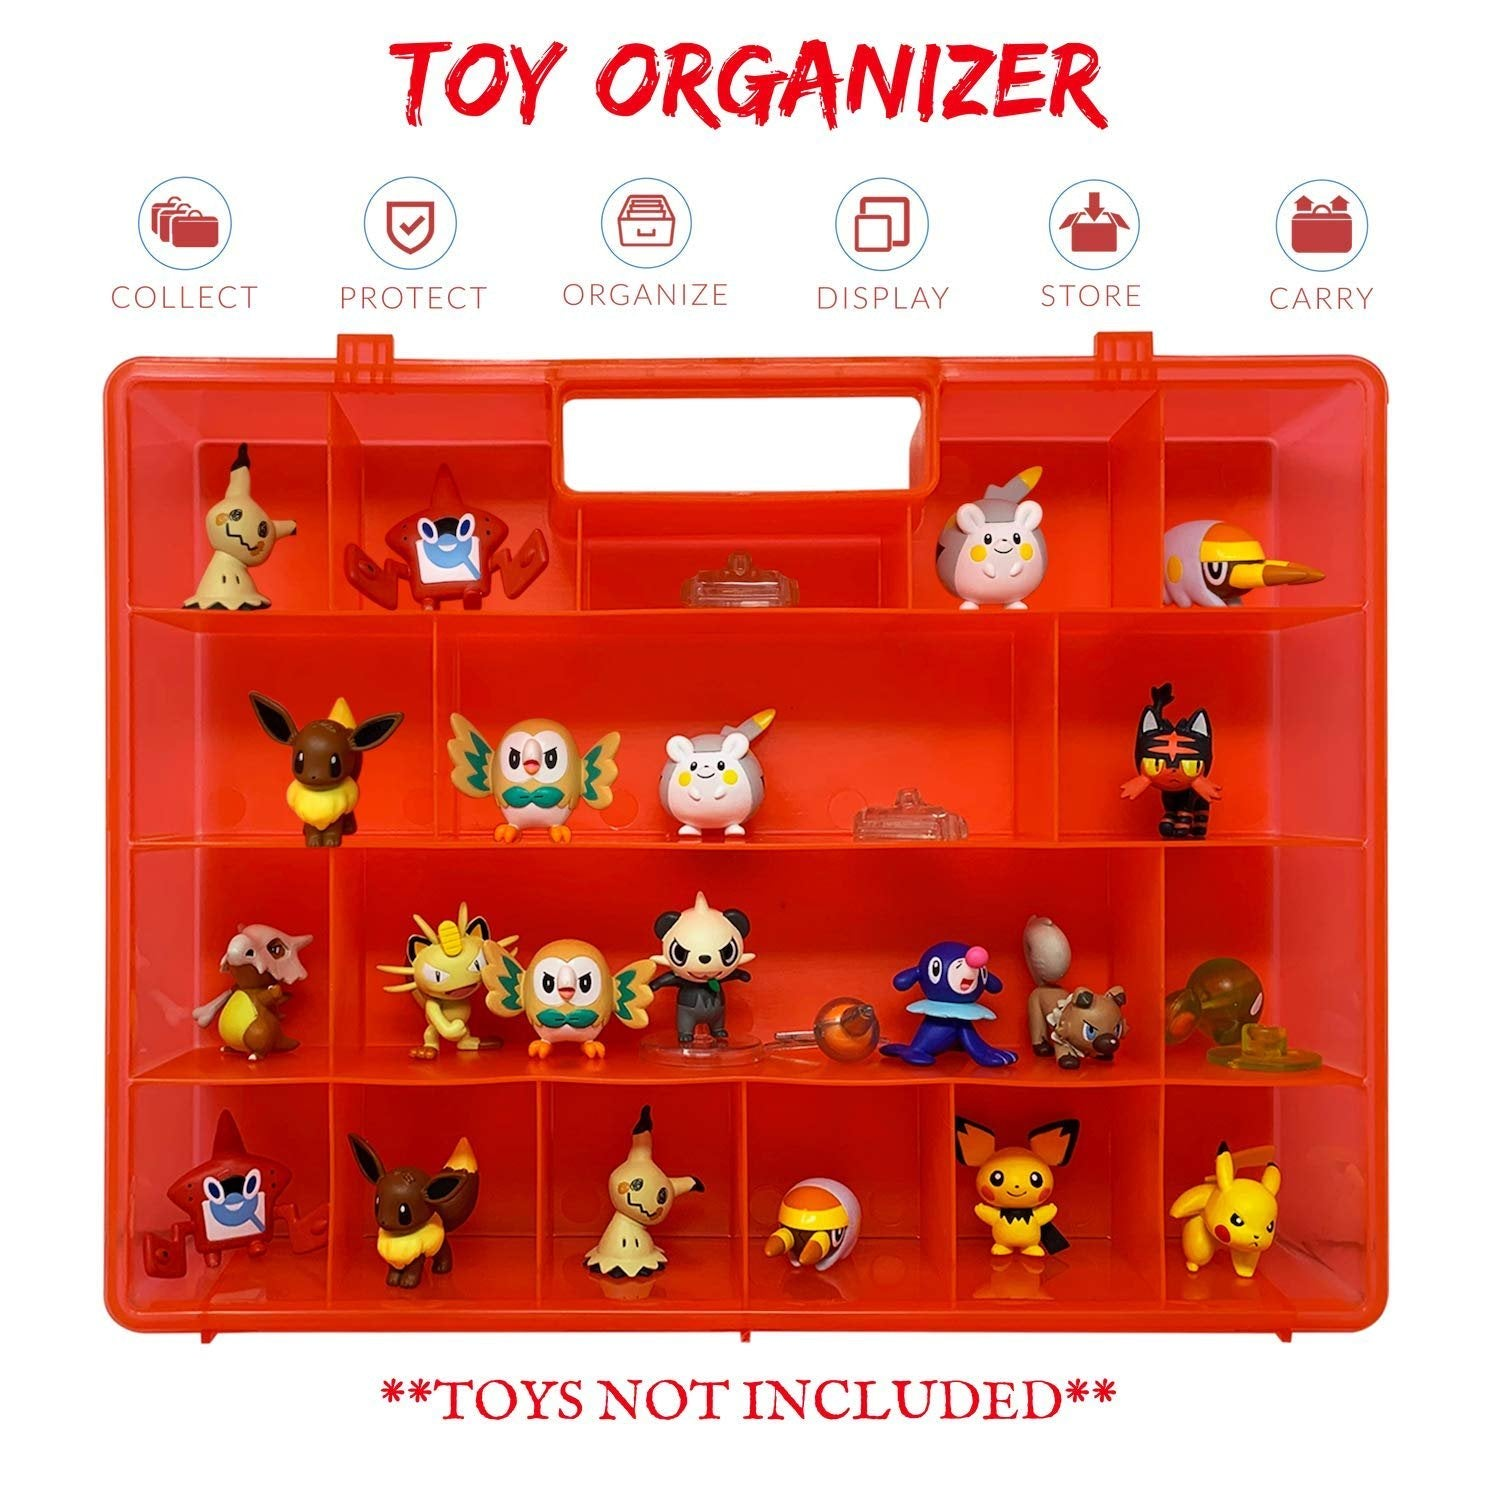 Life Made Better, Red Heavy-Duty Protective Action Figure Toy Carrying Storage Case, Compatible with Pokemon, not Made by Pokemon